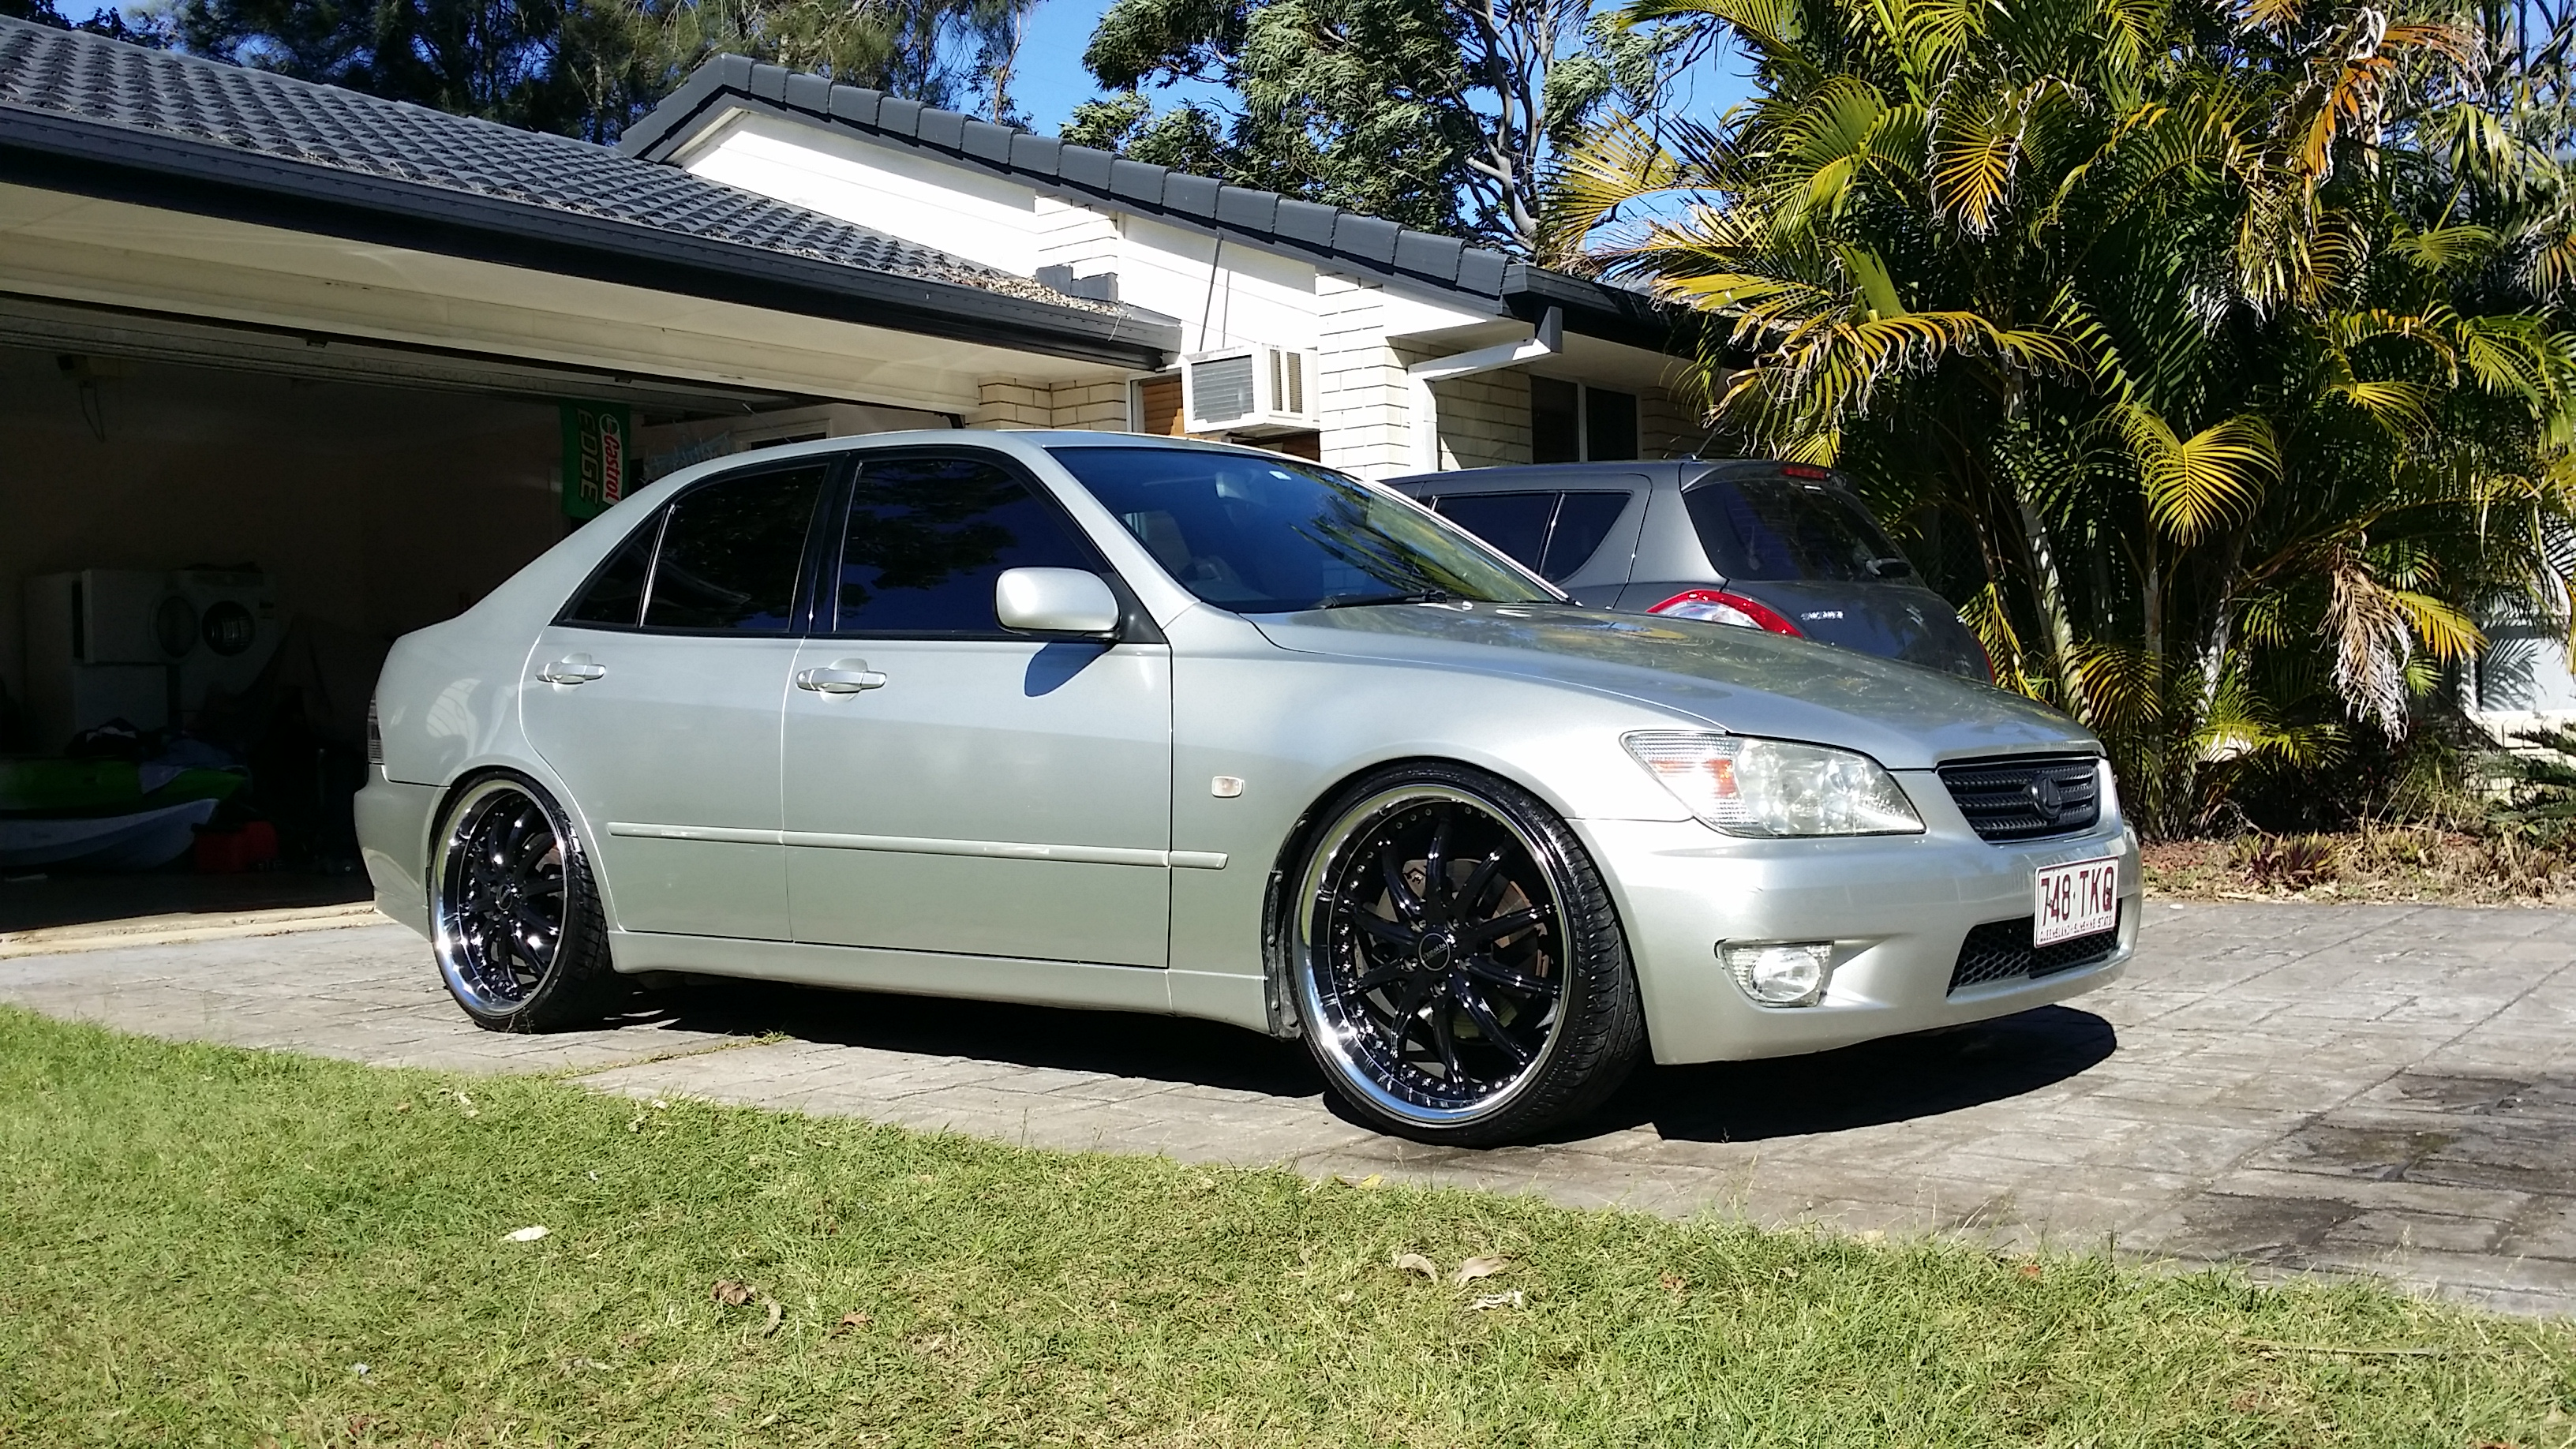 2000 lexus is200 sports luxury gxe10r for sale or swap qld gold coast 2741068. Black Bedroom Furniture Sets. Home Design Ideas